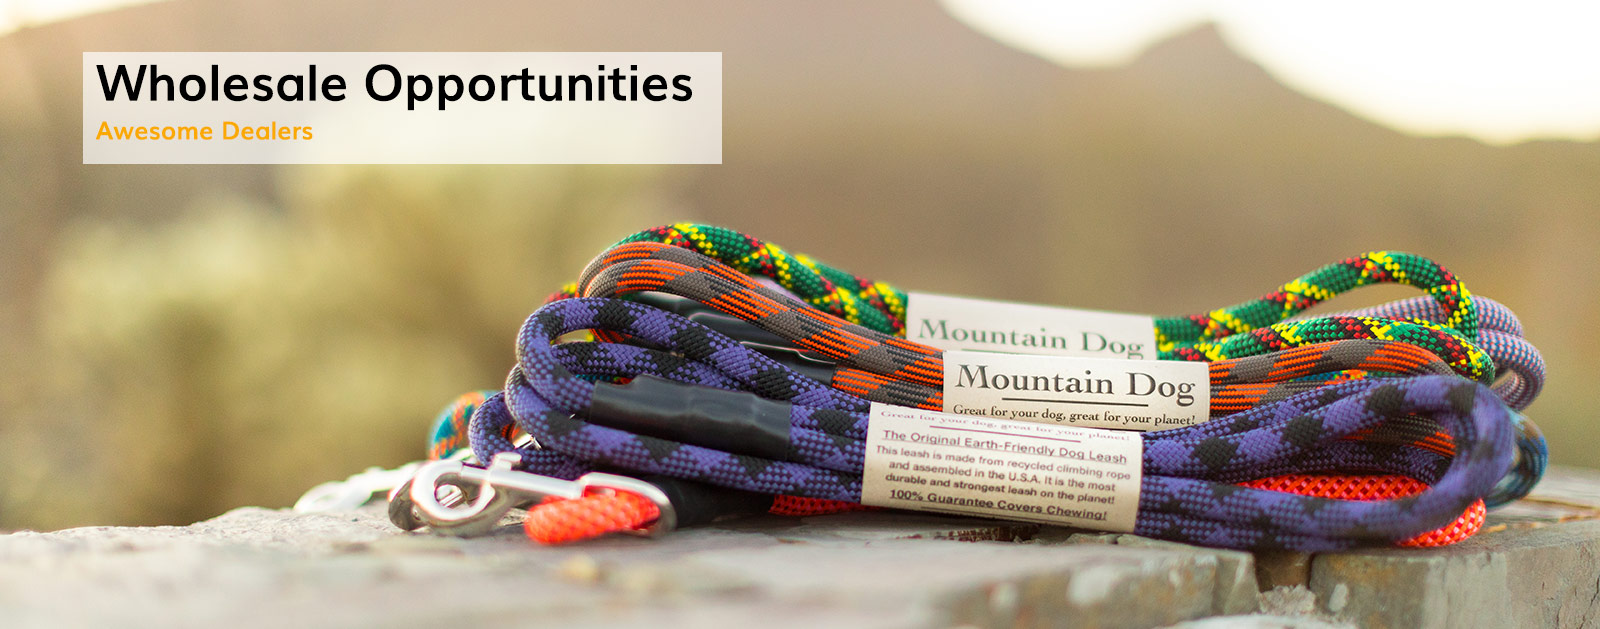 wholesale-opportunties-v1